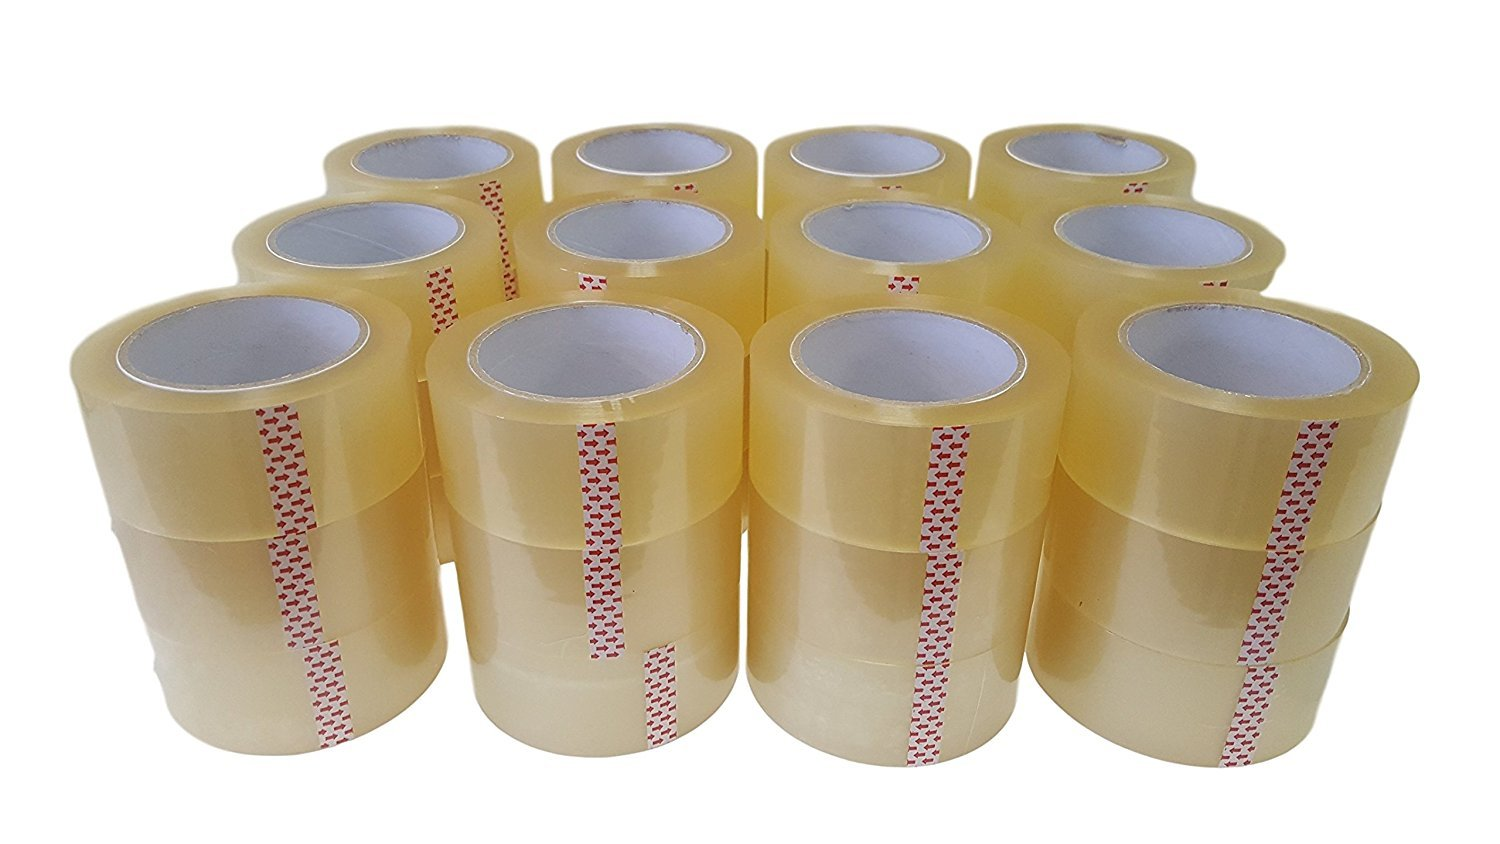 Empire Mailers - 12 Rolls - 55 Yards Per Roll (165 feet) 2 Inch Wide 2.0 MIL Extra Heavy Duty Shipping & Packing Tape Moving & Adhesive Carton Sealing - Strong Clear Industrial Grade